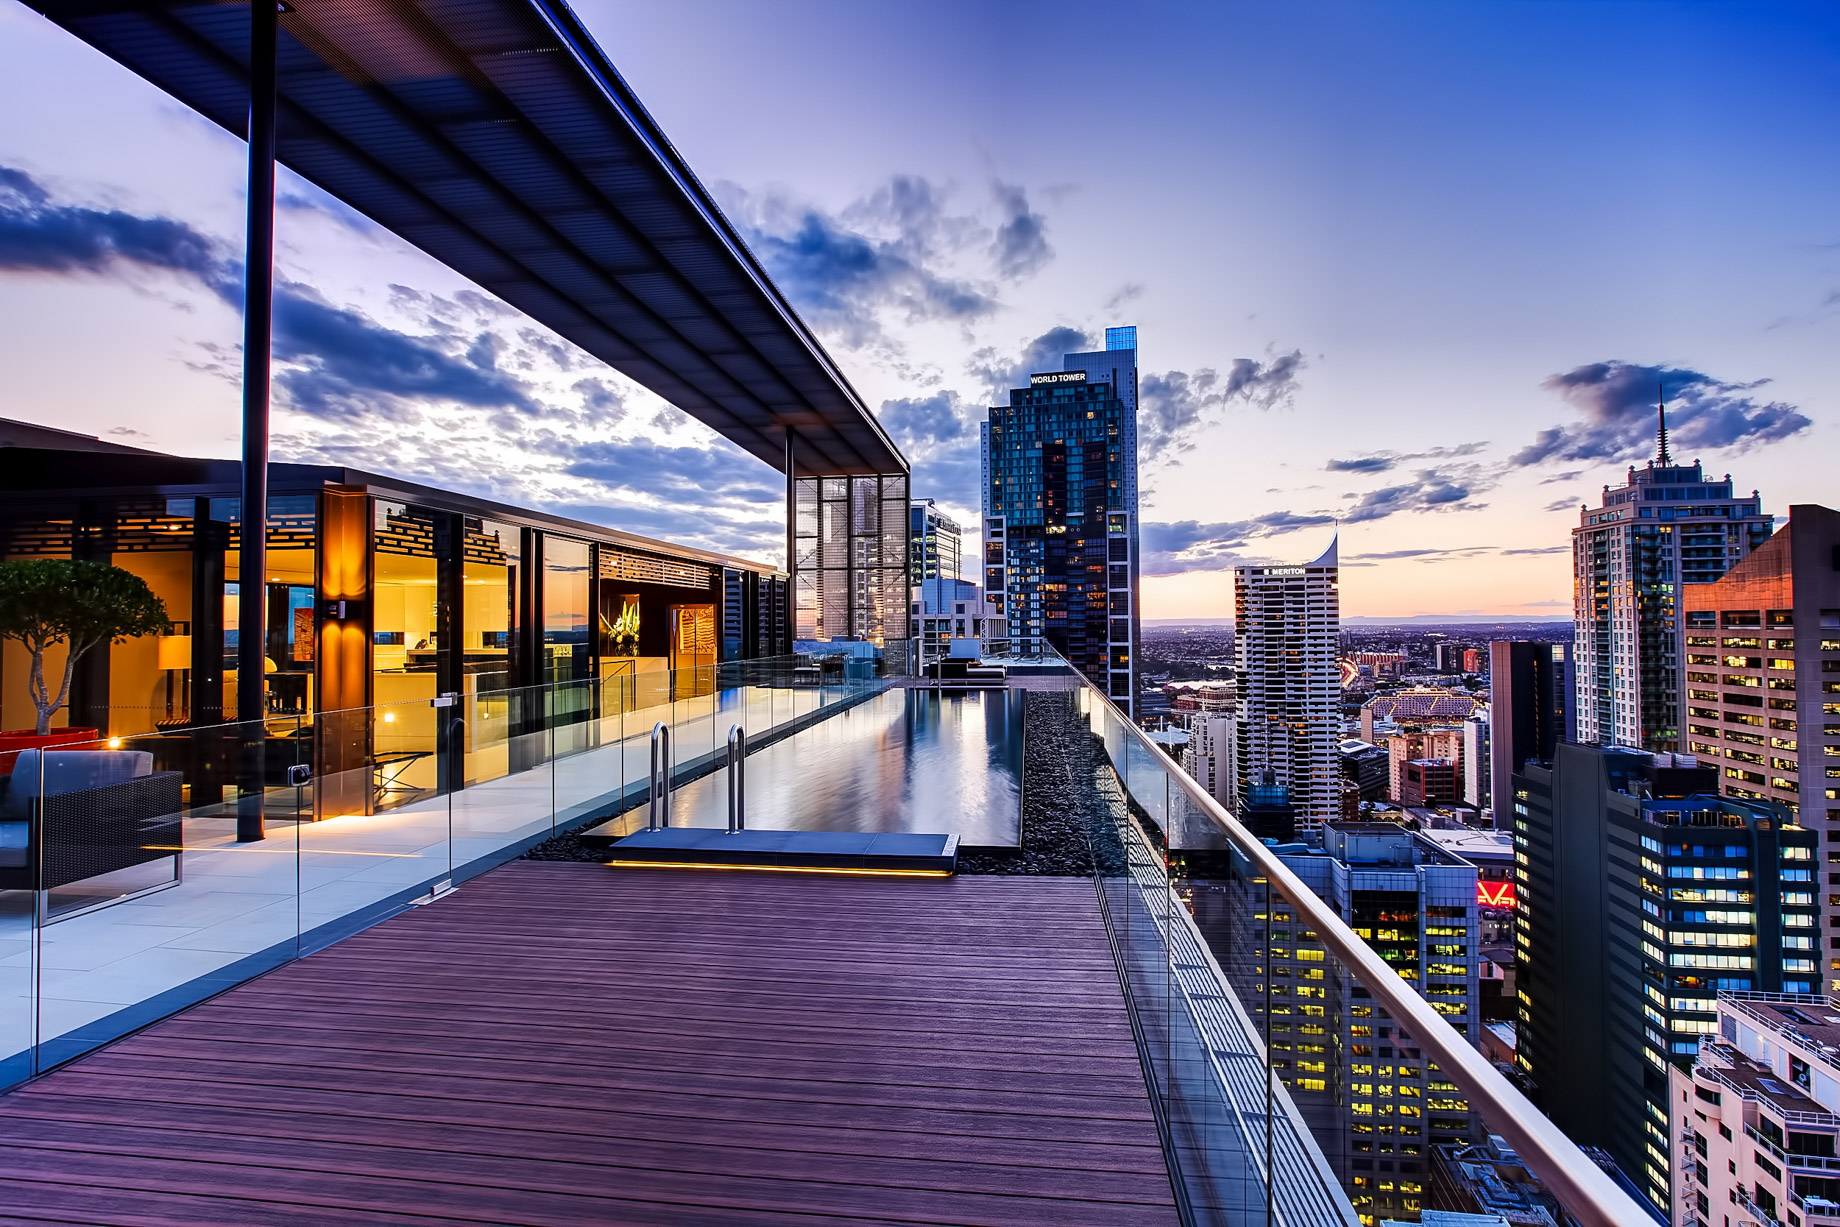 The Penthouse View from the Luxury Hyde Apartment Building in Sydney, Australia